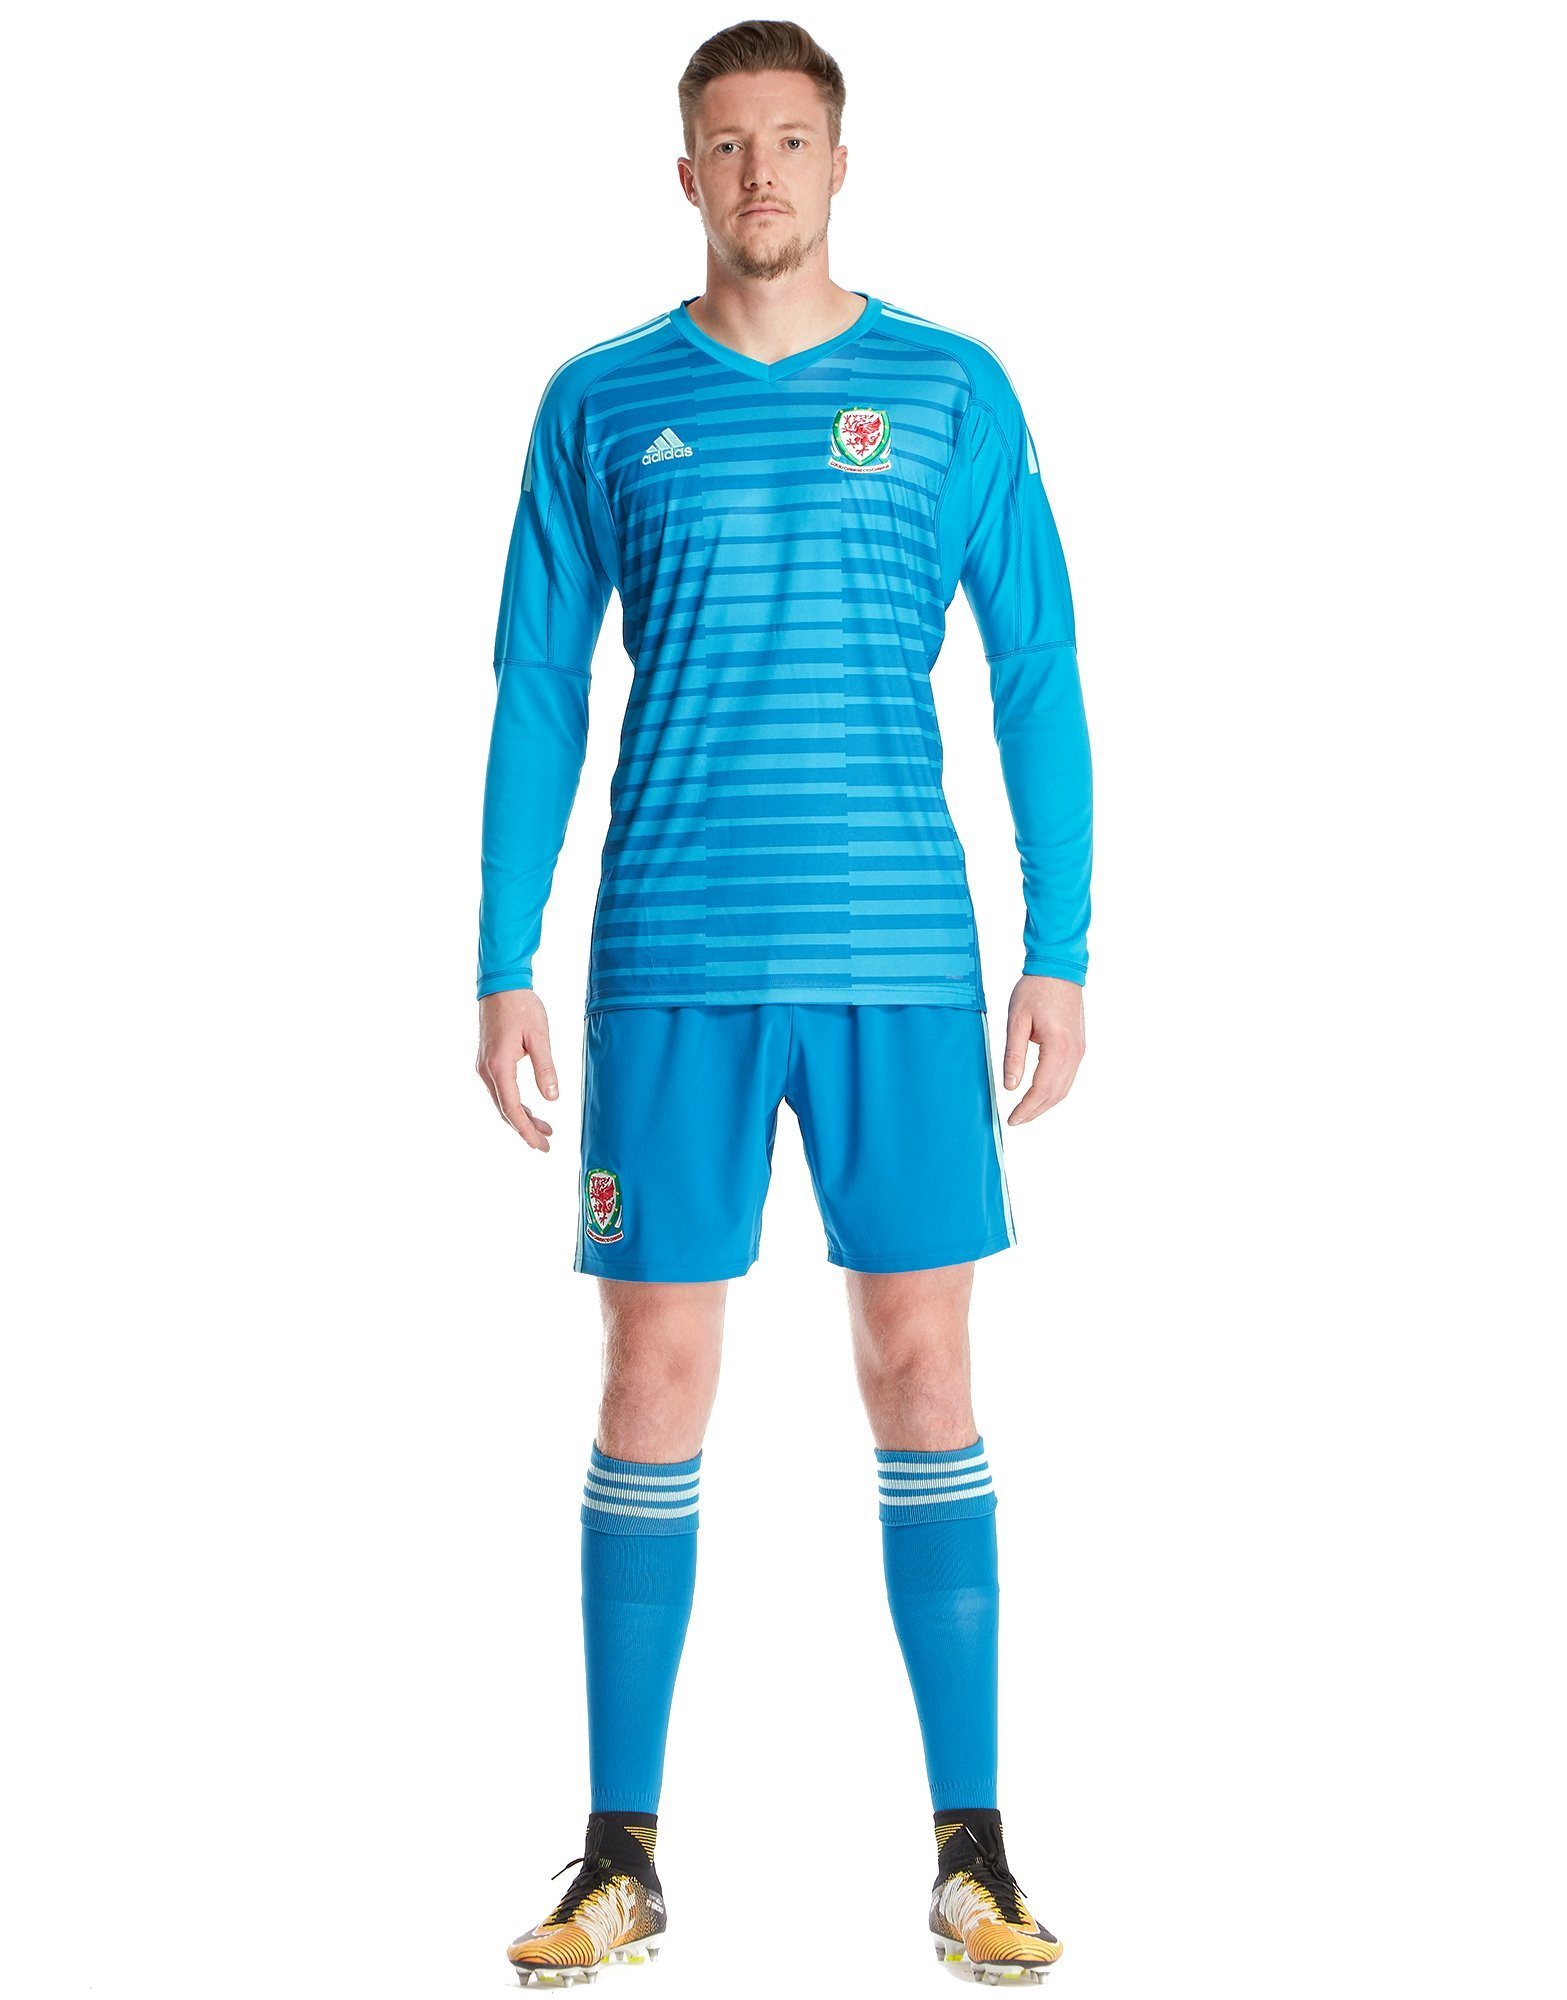 adidas Wales 2018/19 Home Goalkeeper Shirt